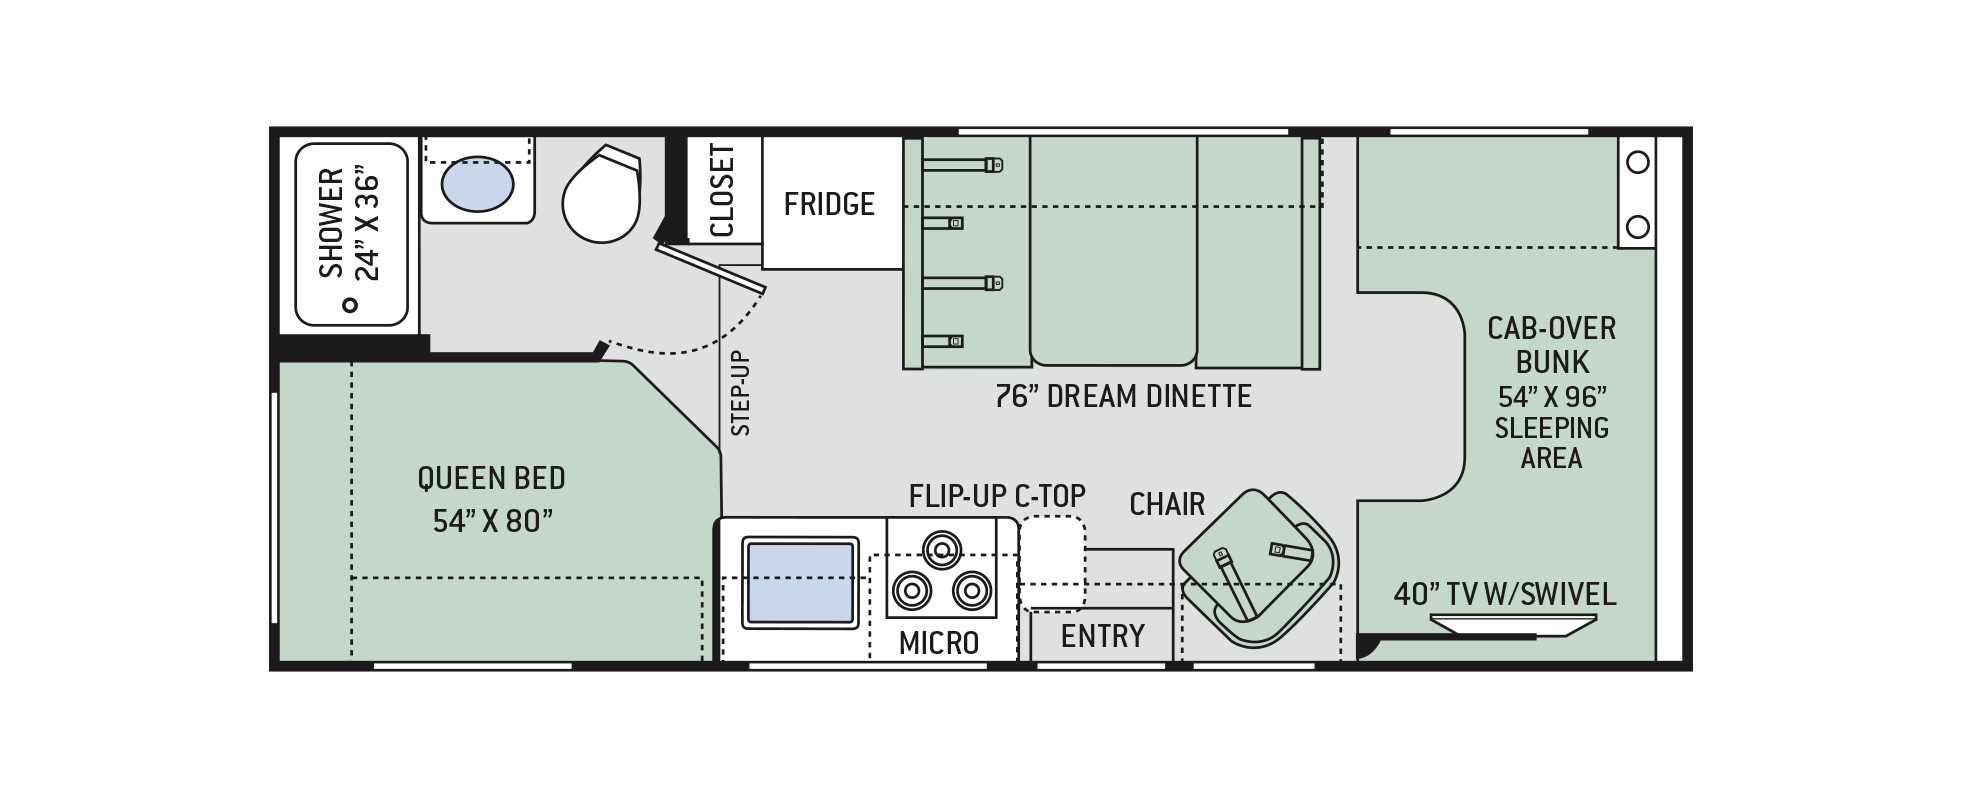 Freedom Elite Class C Motorhomes Floor Plan 23h Thor